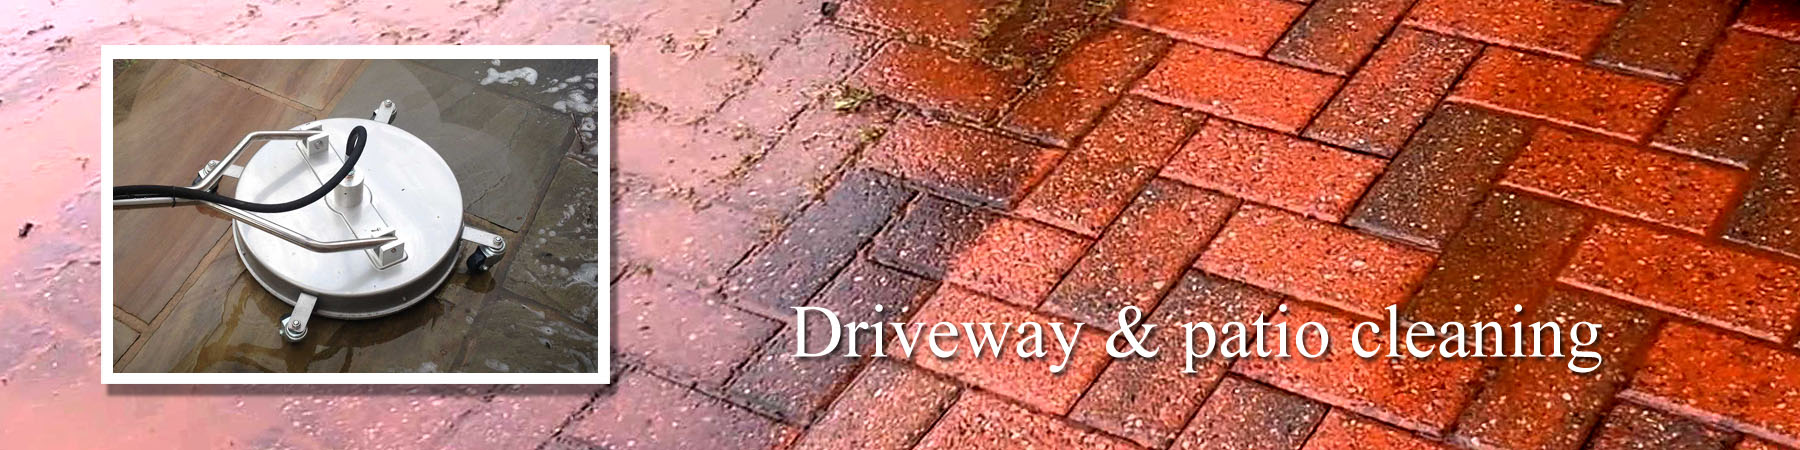 driveway cleaning J R Cleaning